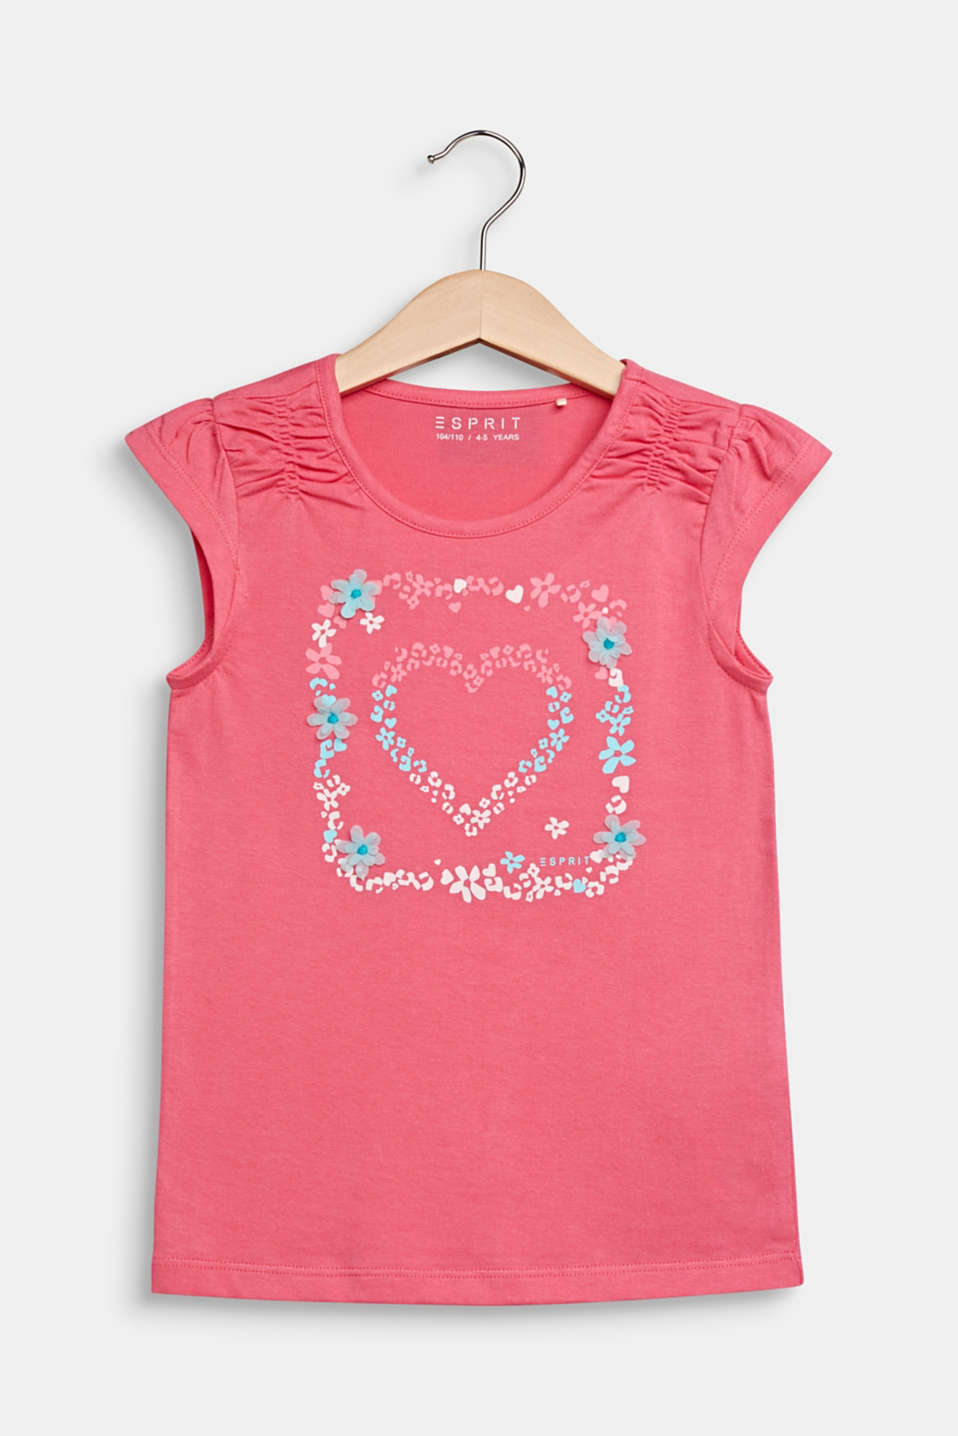 Esprit - Print T-shirt with a floral trim, 100% cotton